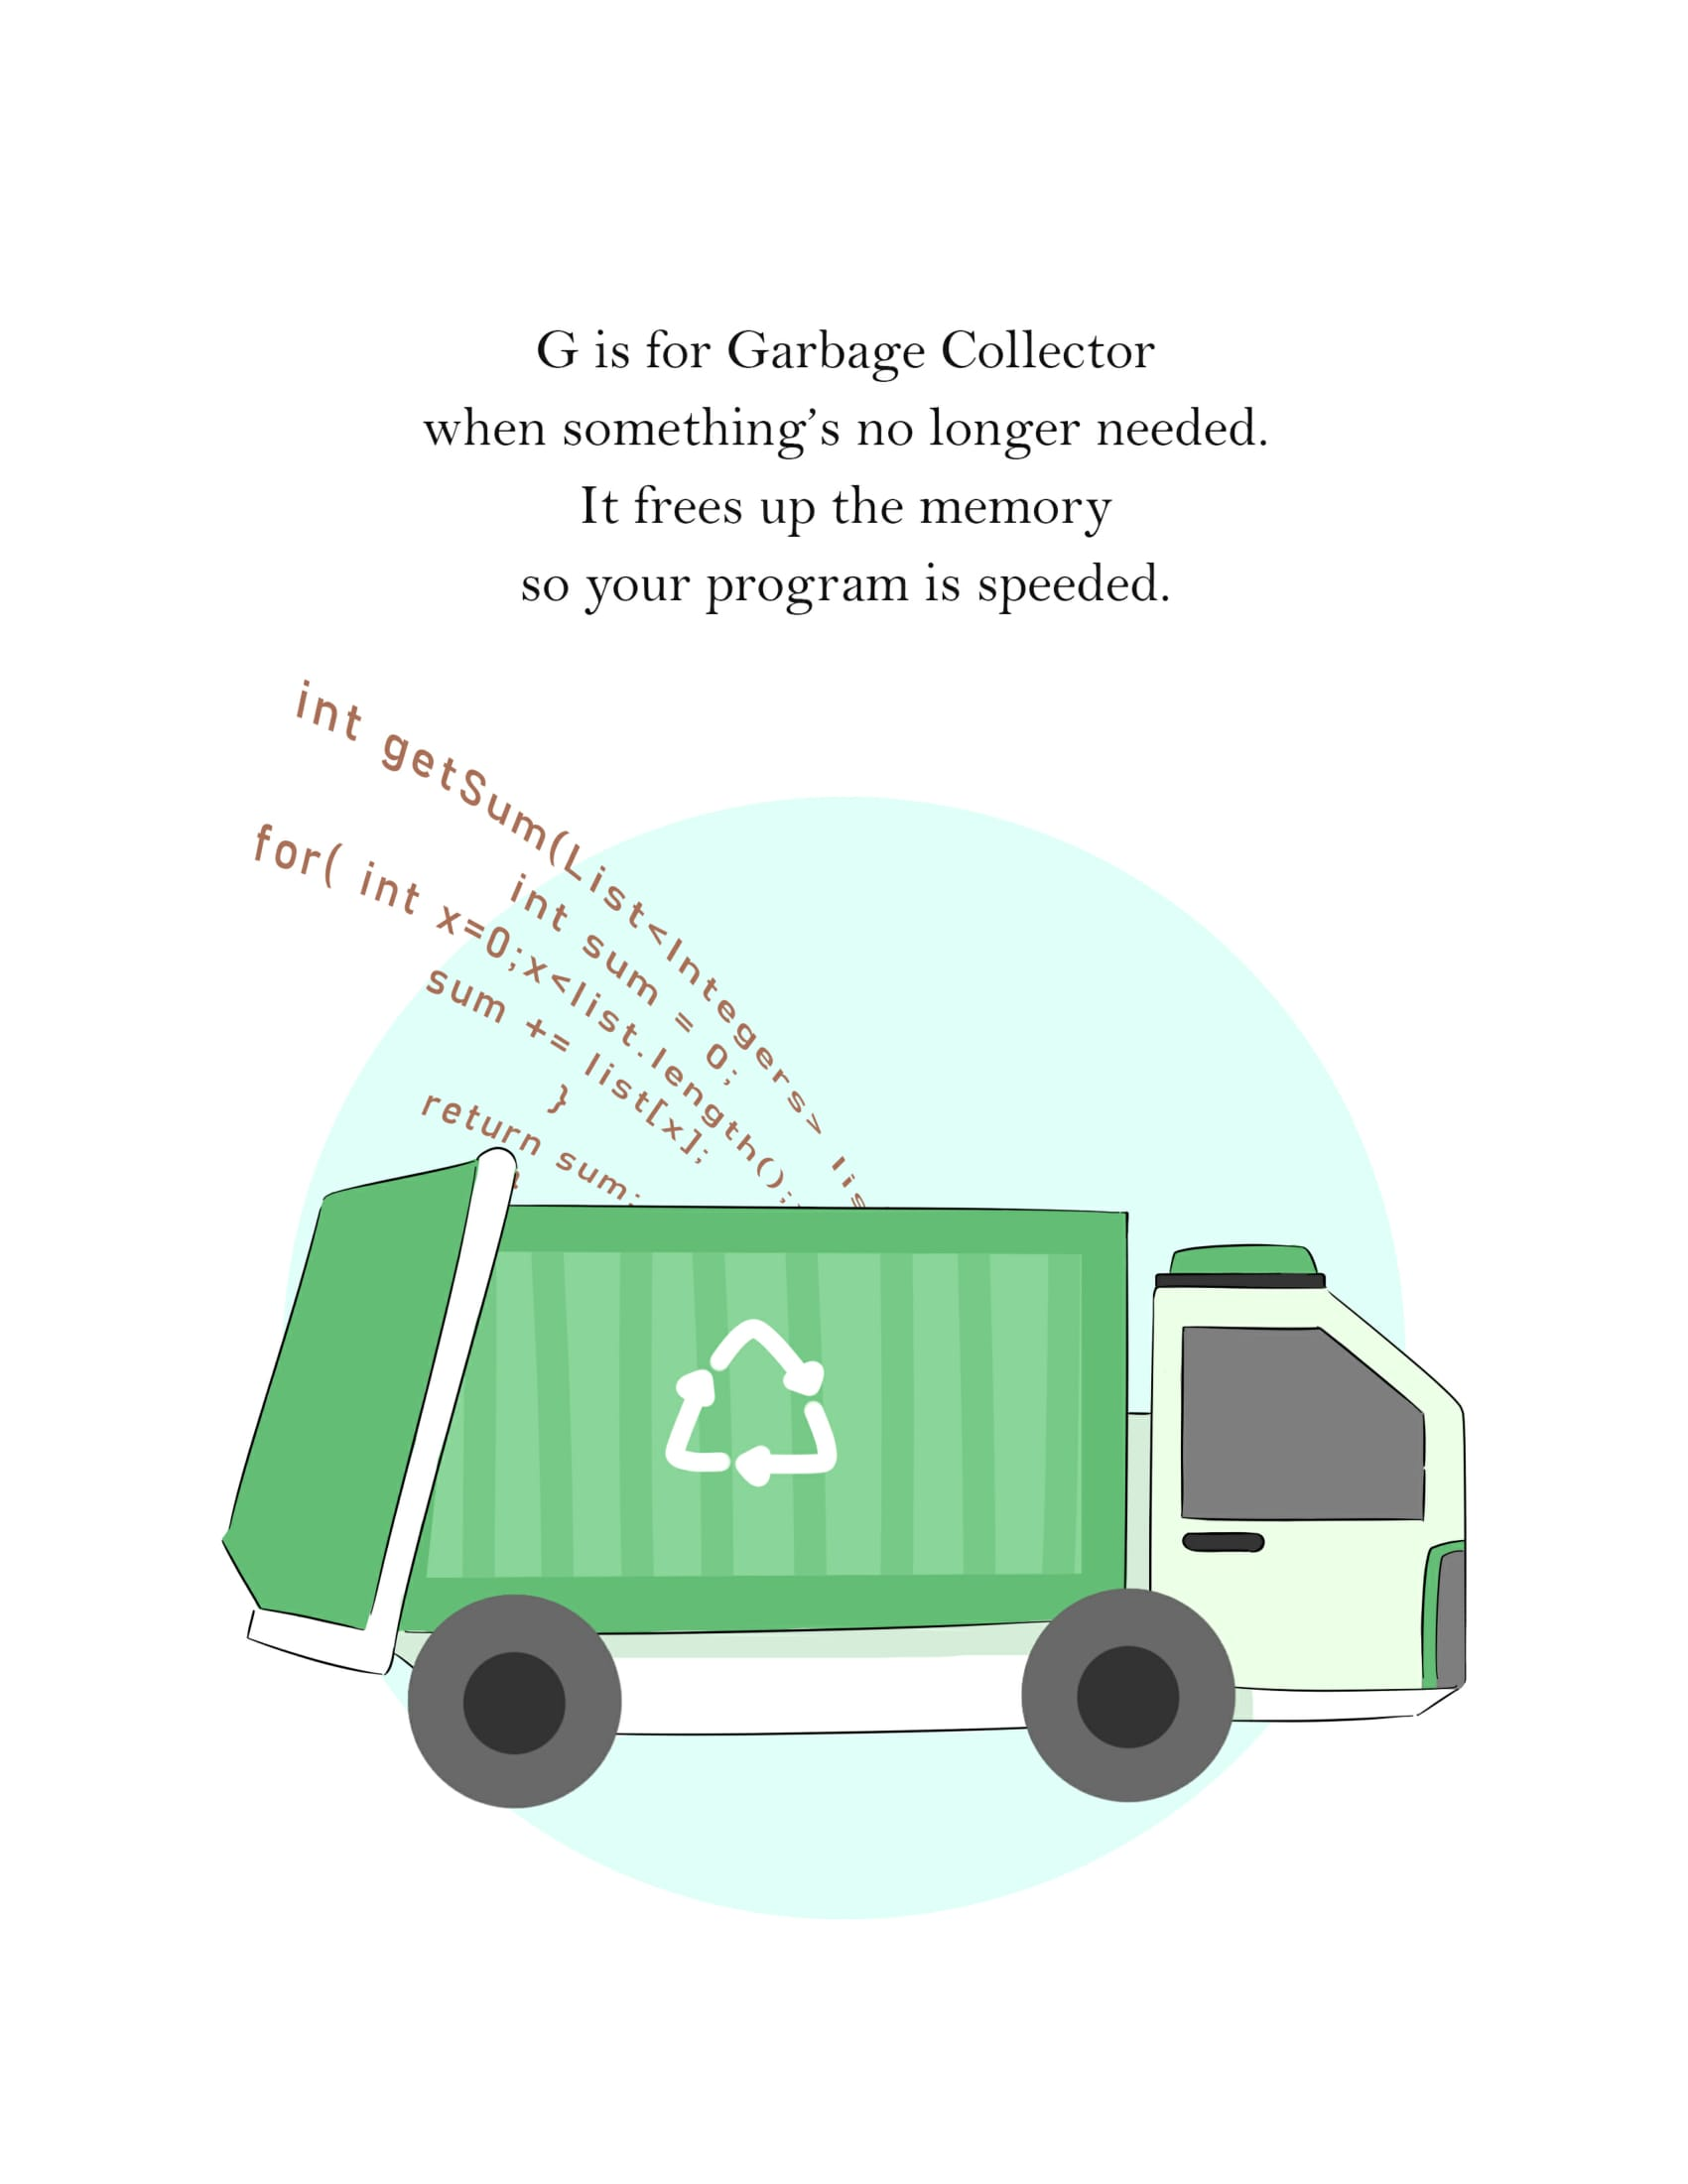 G is for Garbage Truck